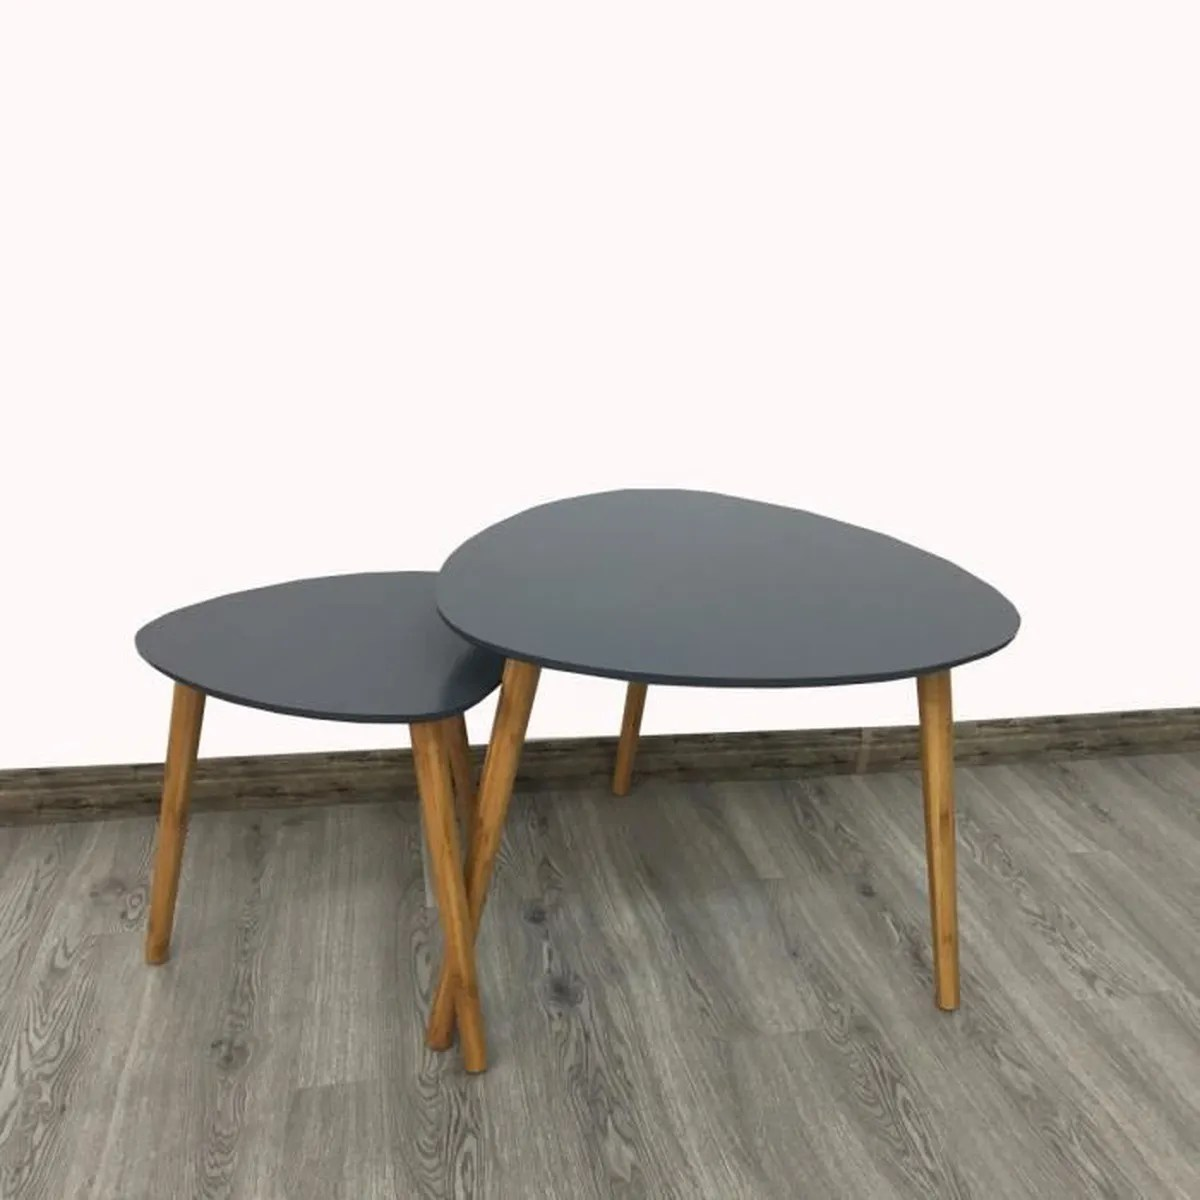 Table Basse Gigogne Design Lot De 2 Tables Basses Gigognes Style Scandinave Grises